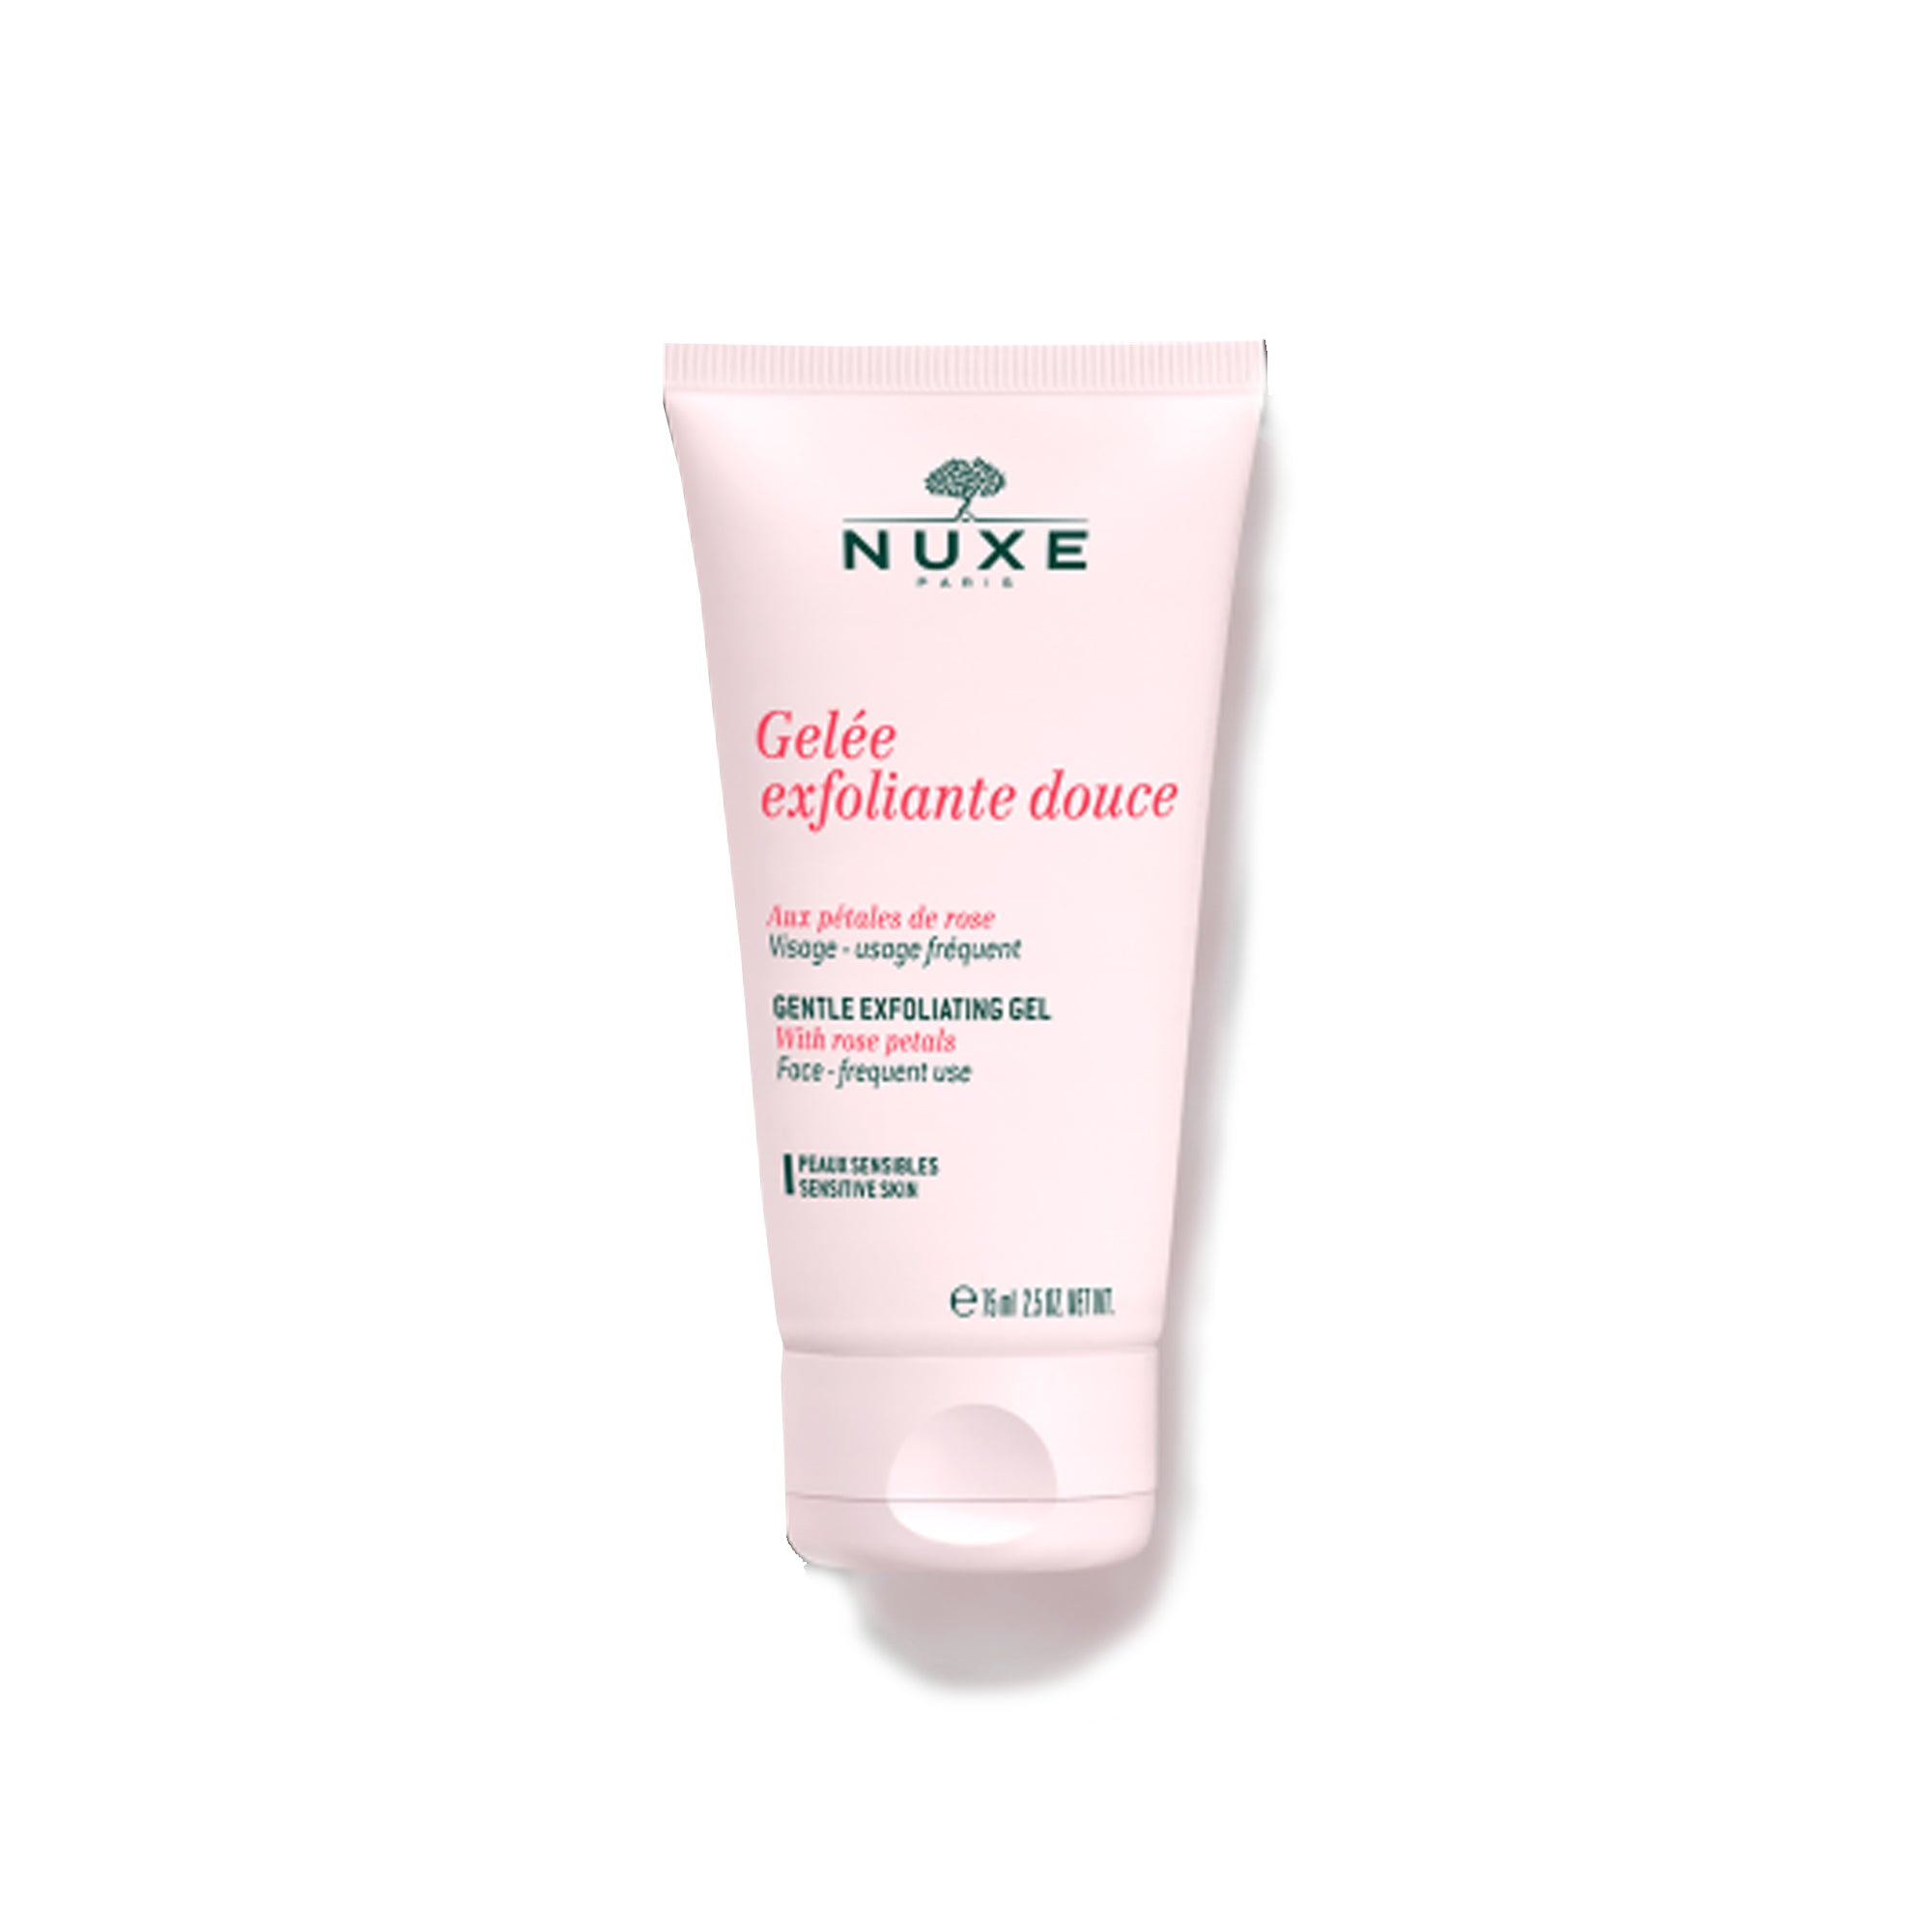 Nuxe Exfoliating Gel with Rose petals 2.5 oz.